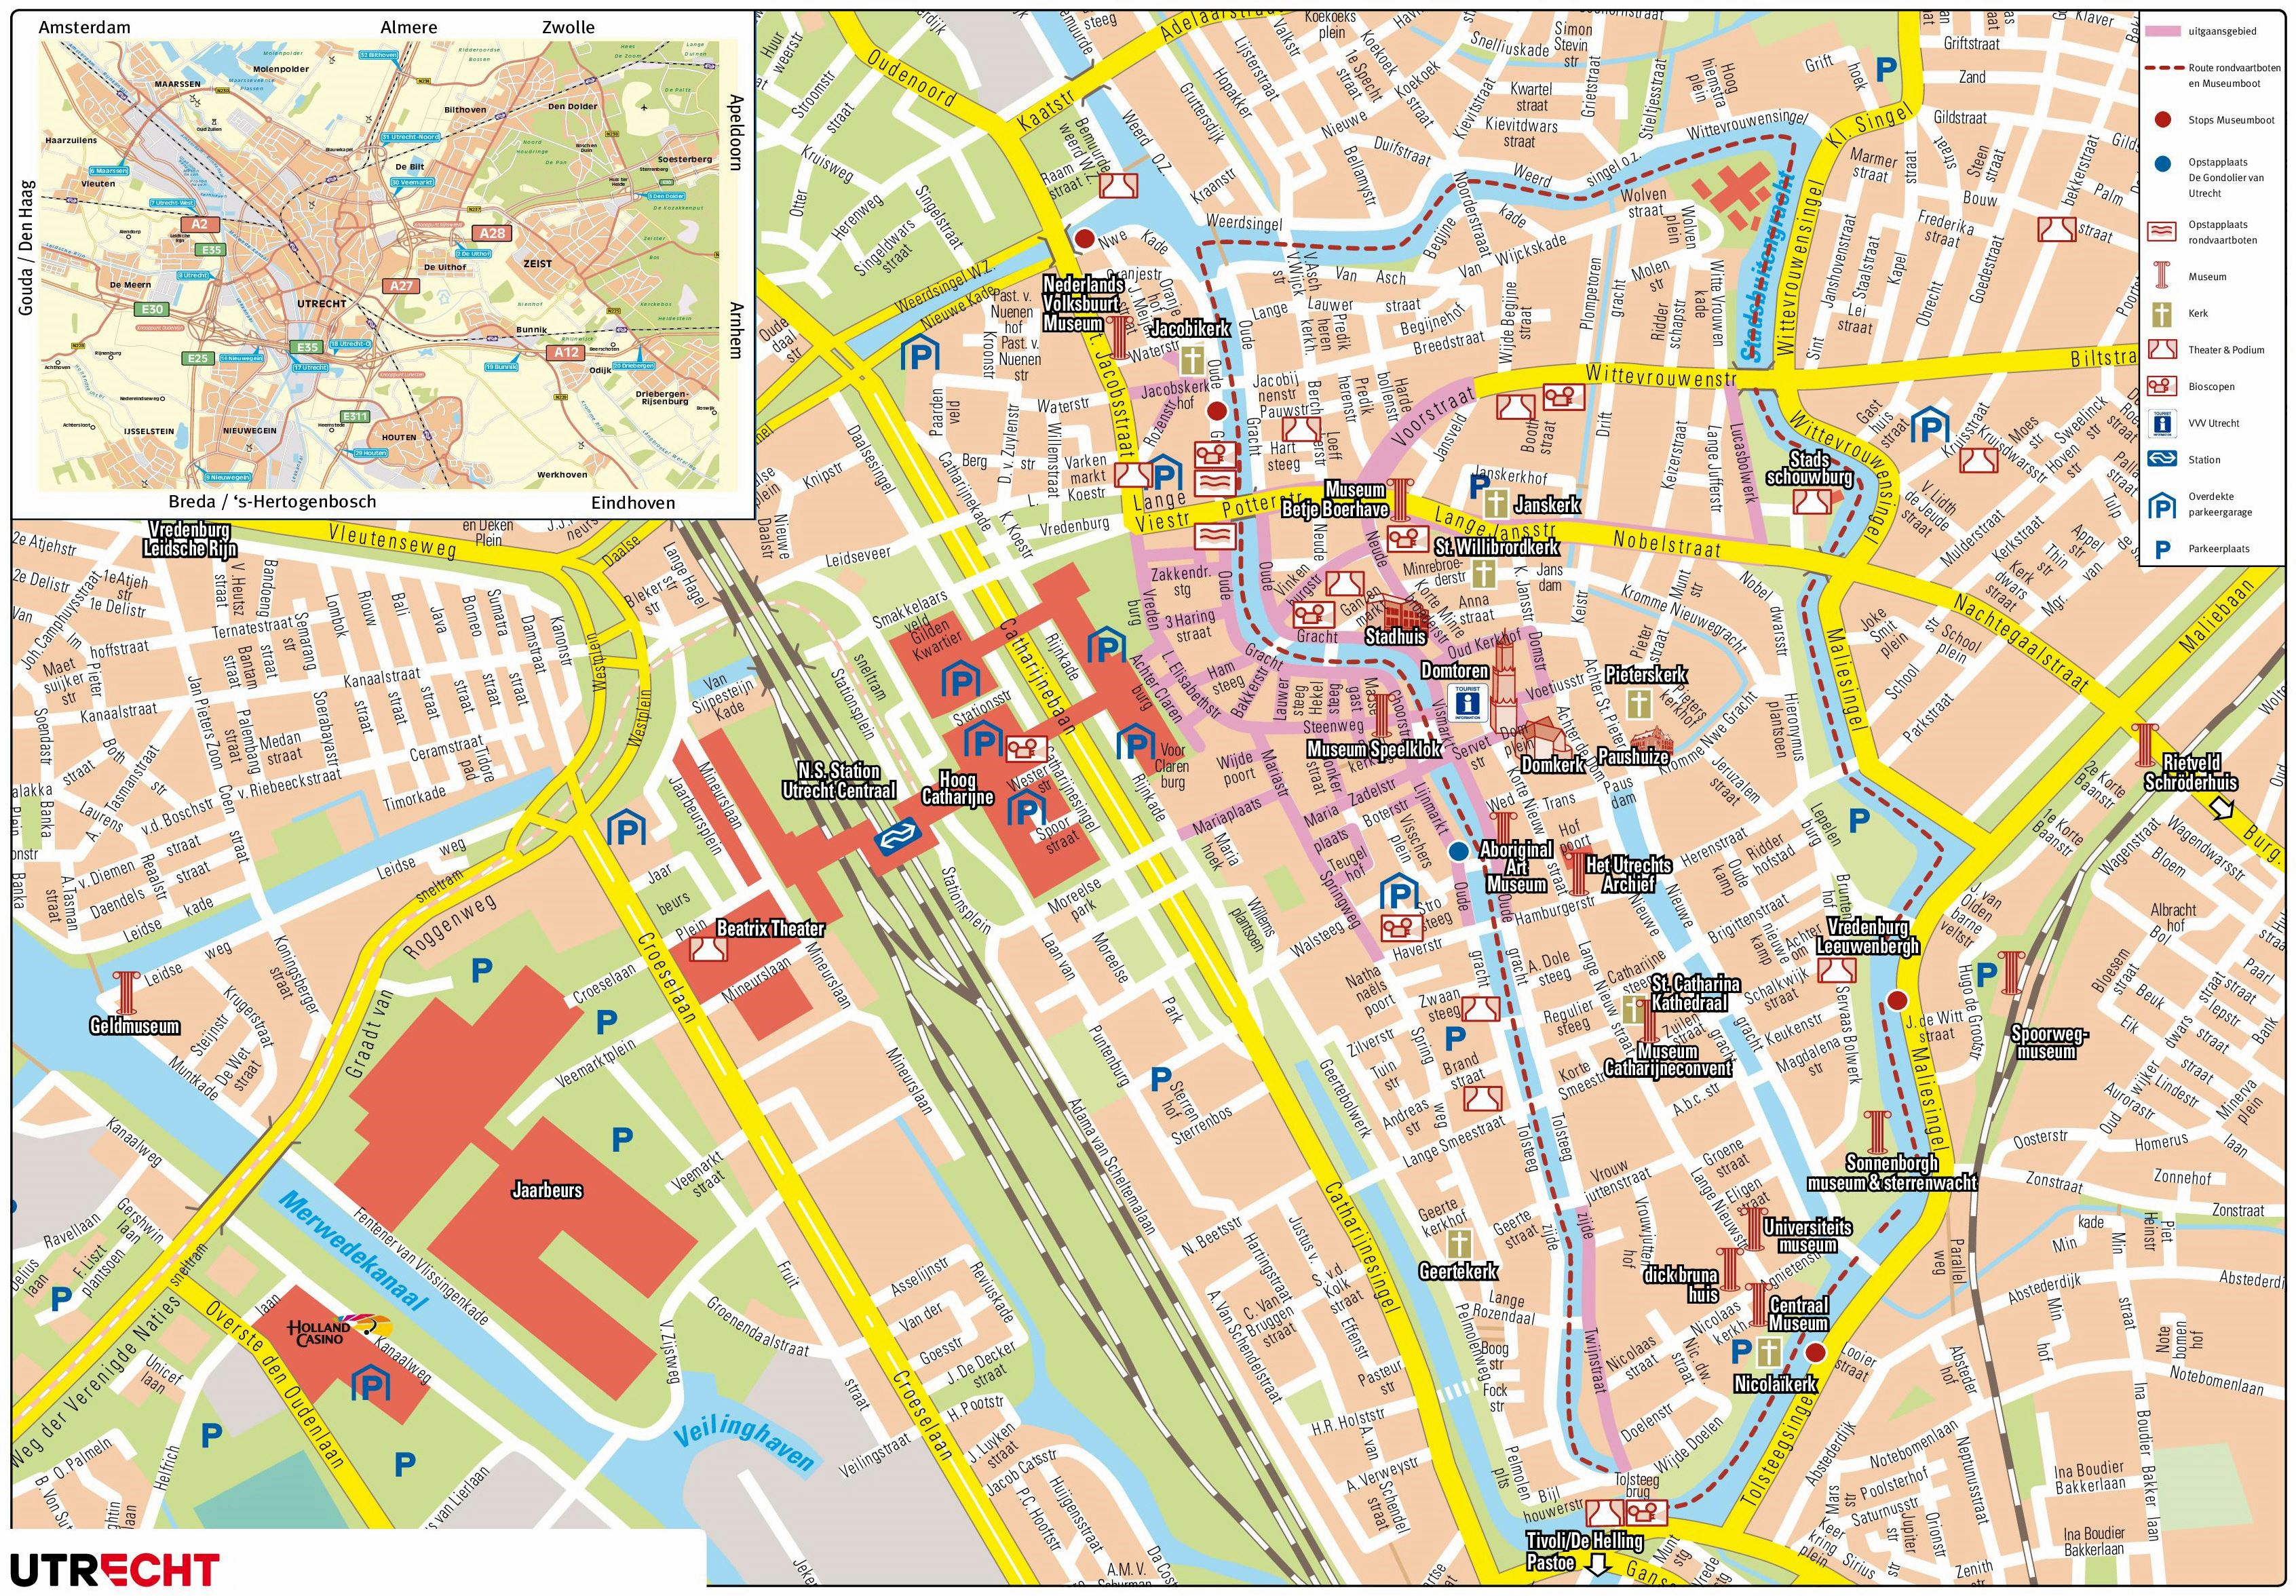 Large Utrecht Maps for Free Download and Print | High-Resolution and ...